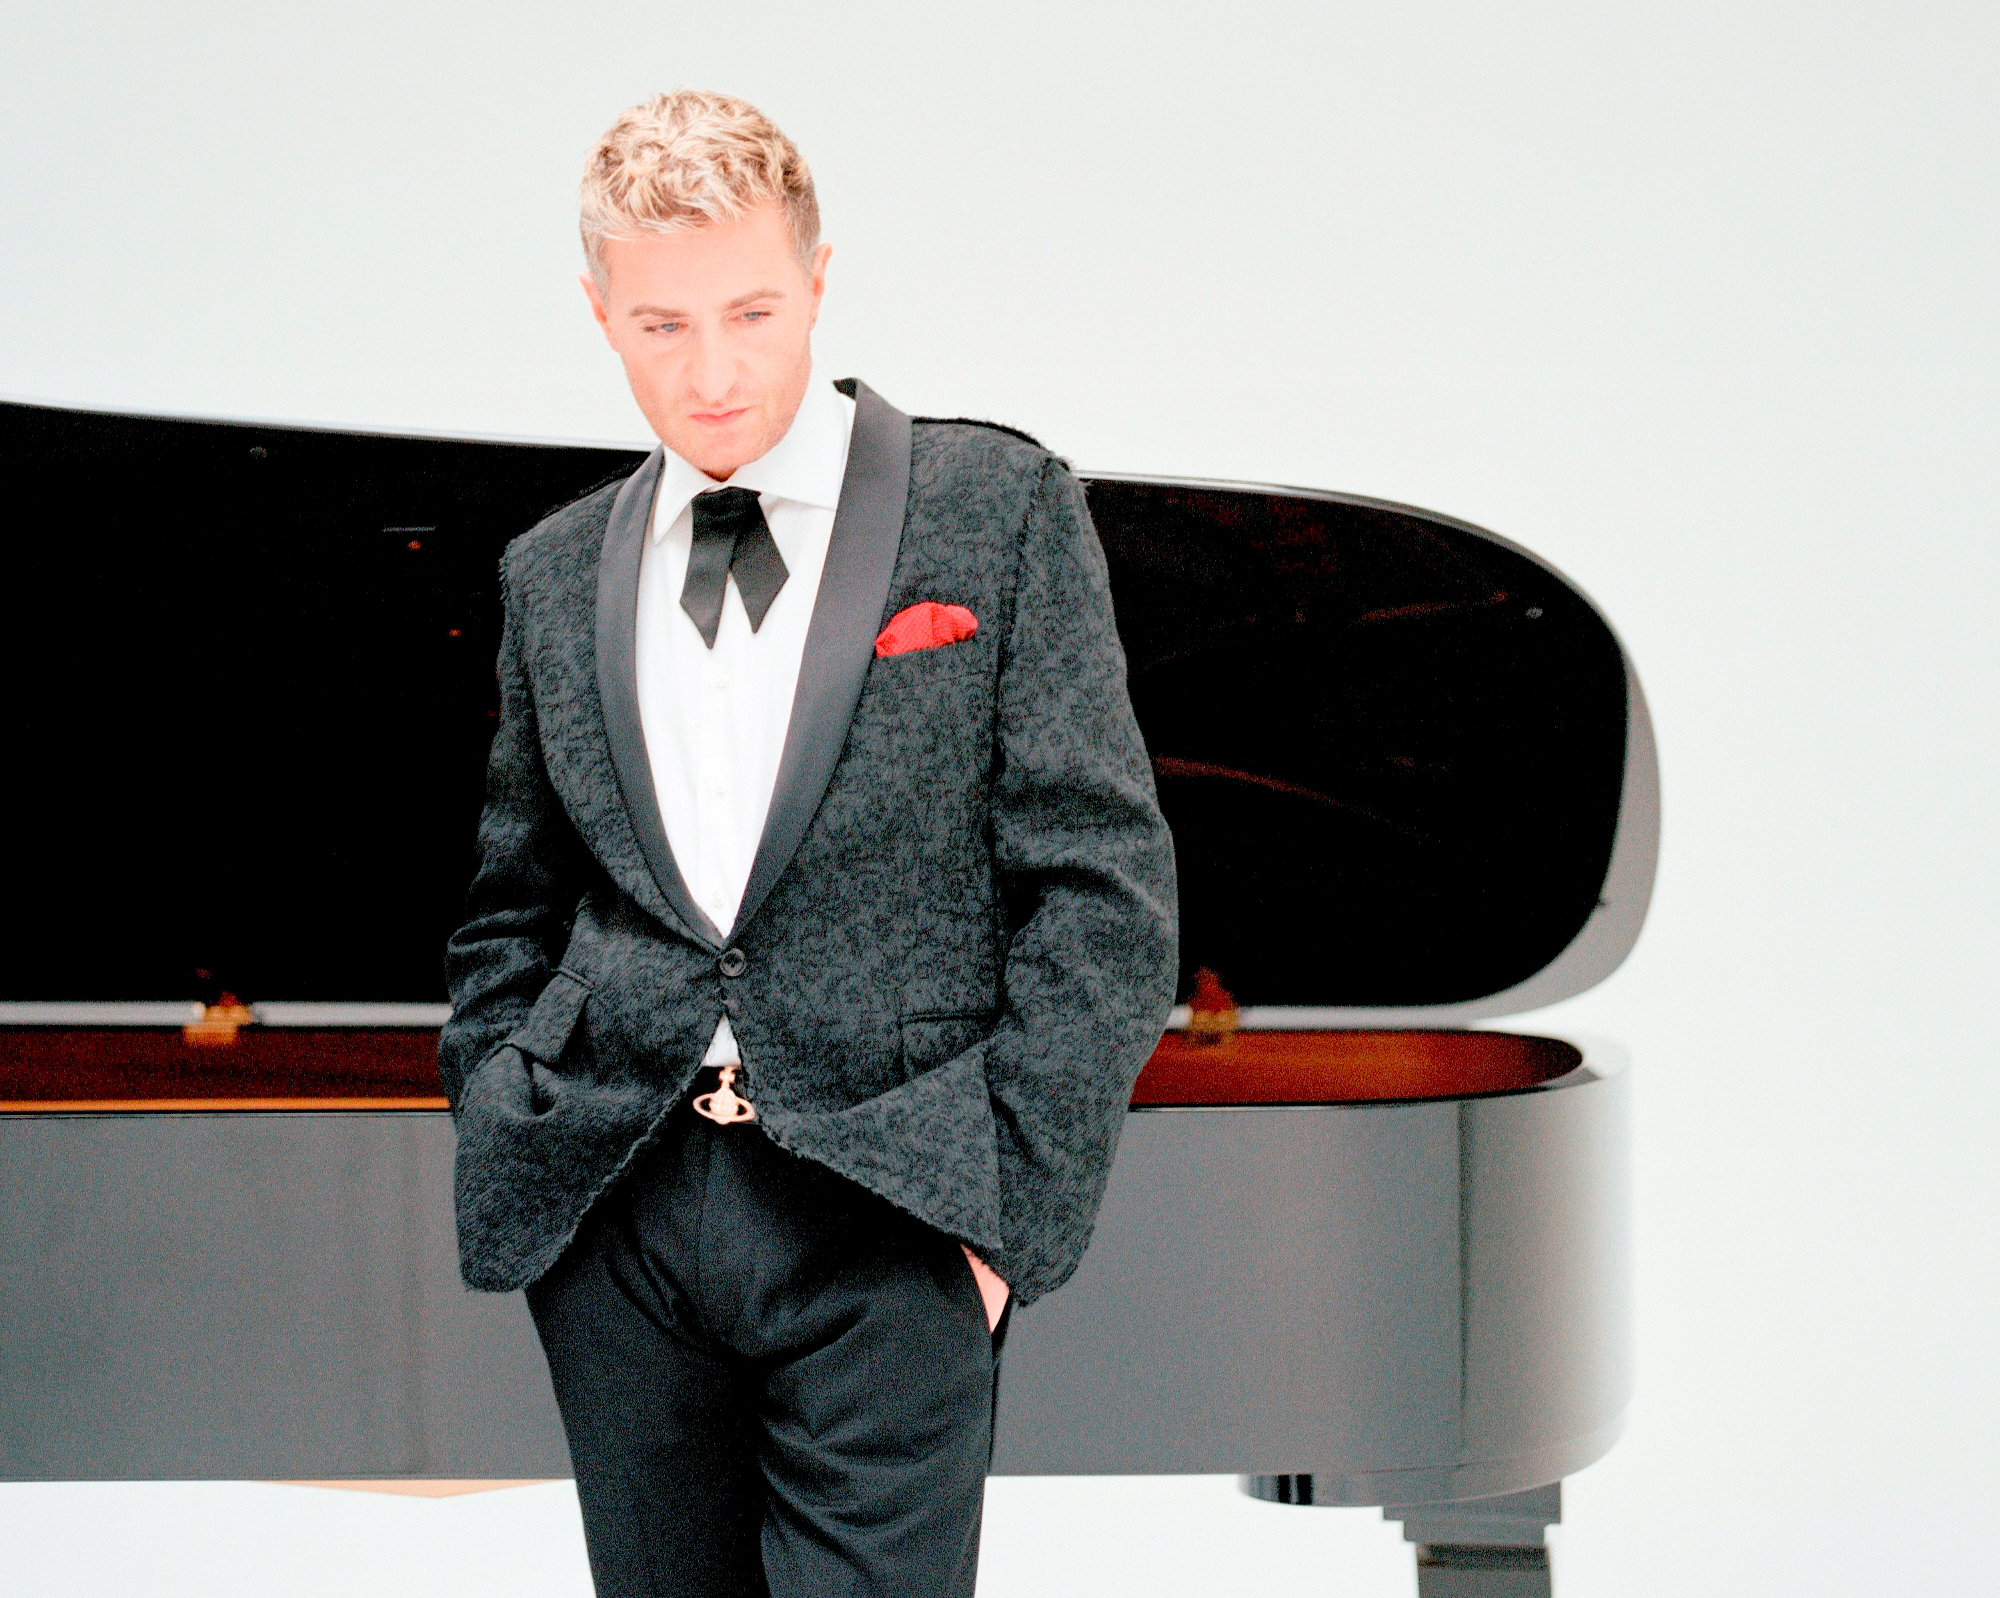 Jean-Yves Thibaudet will visit the Grand Rapids Symphony during its 2018-2019 season.